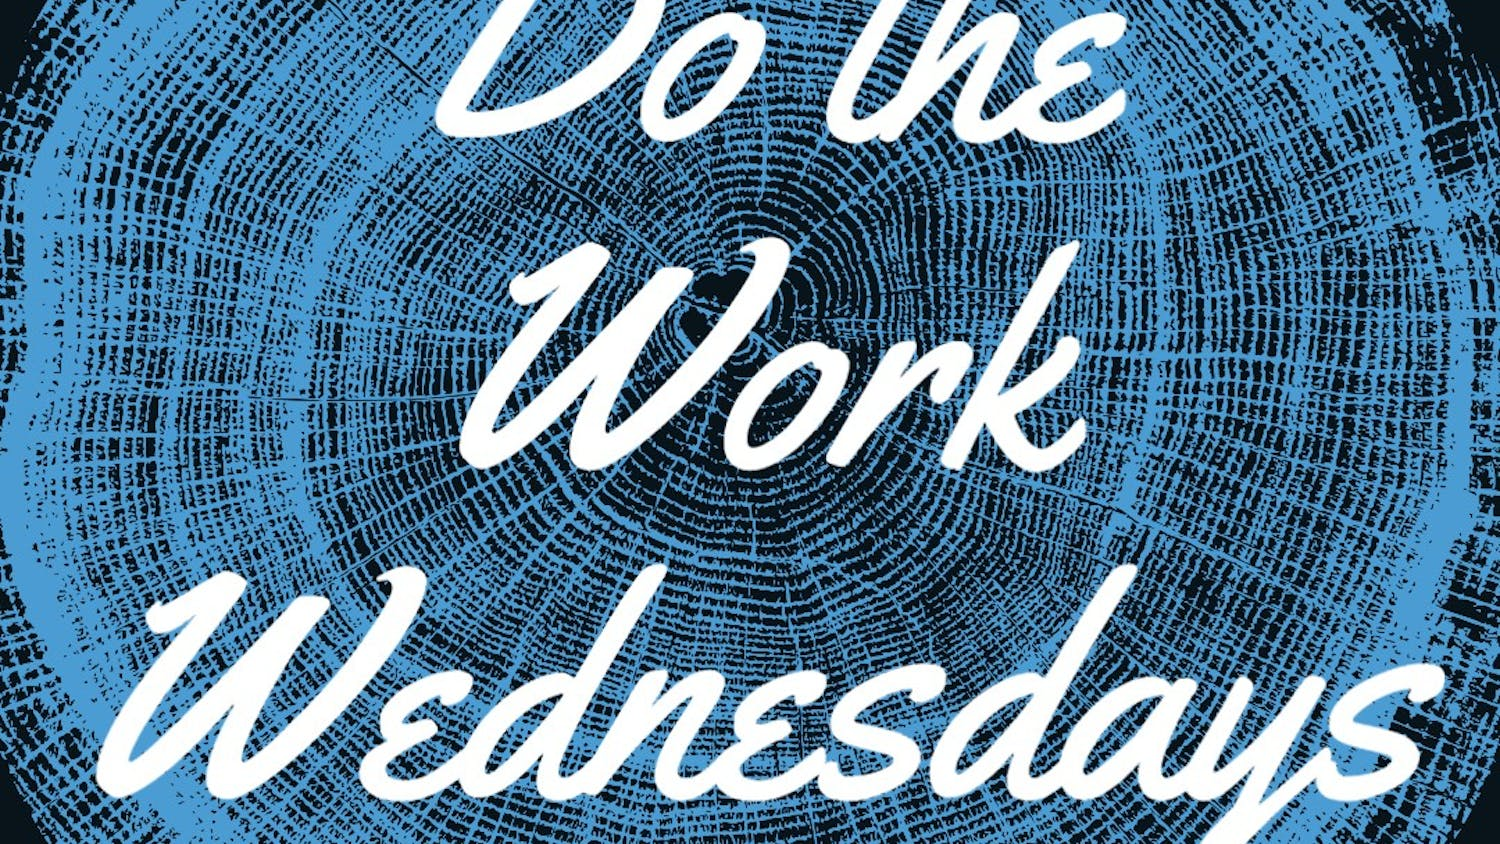 The logo for the Do the Work Wednesdays series. Courtesy of Cat Zachary.